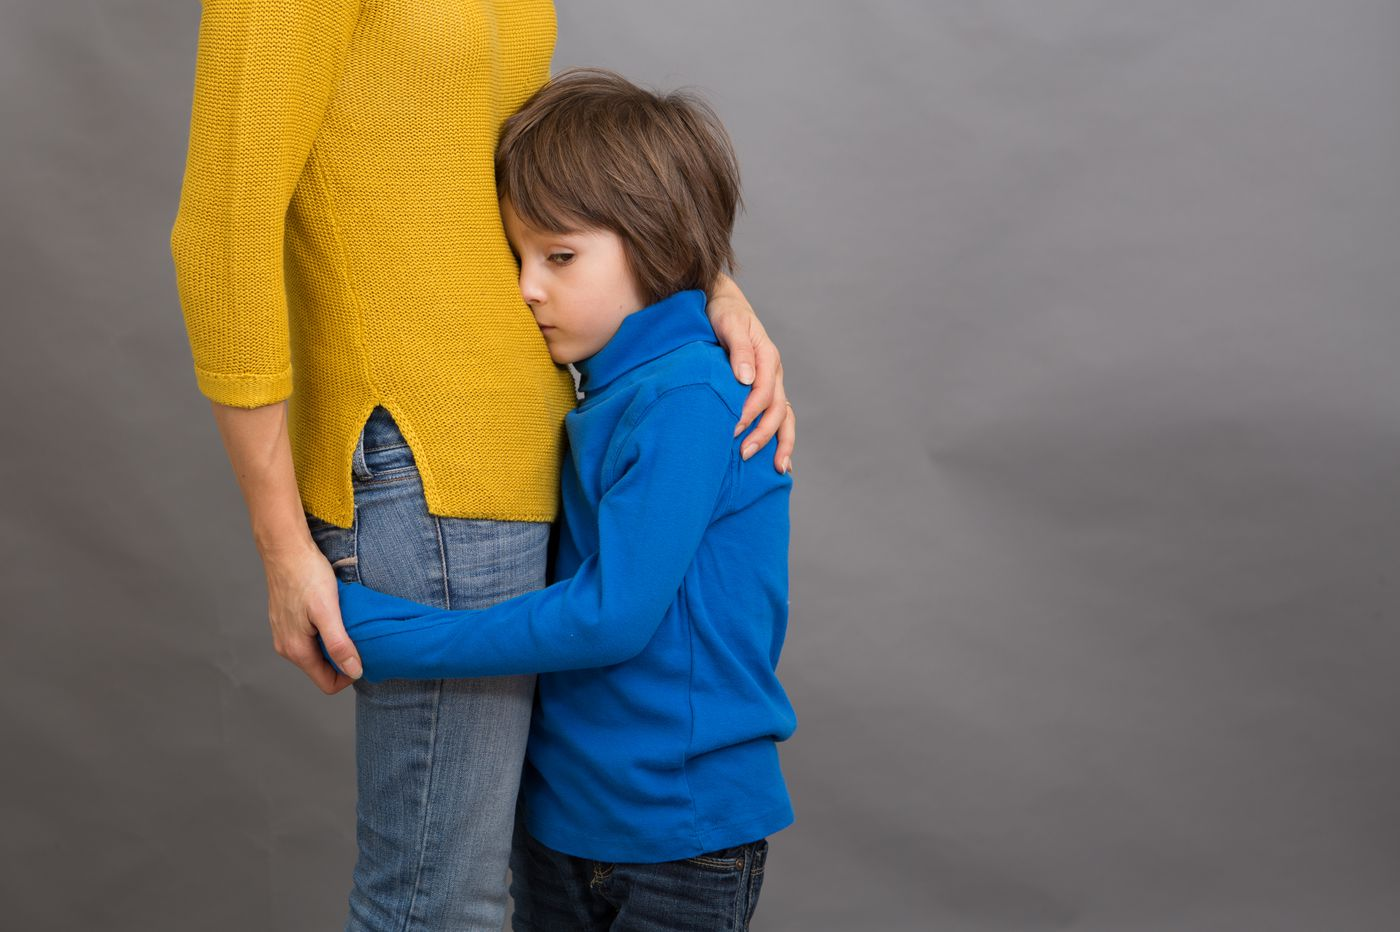 How to talk to your son about consent, boundaries, and #MeToo